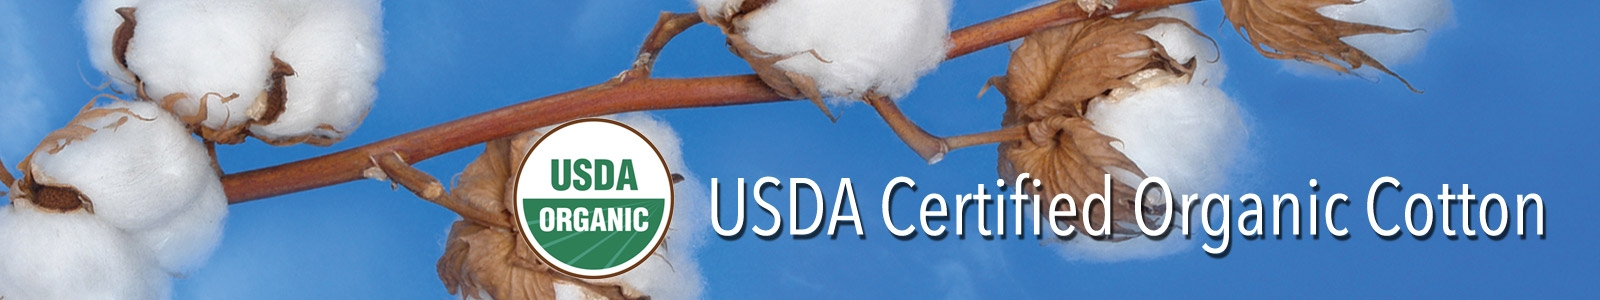 USDA Certified Organic Cotton